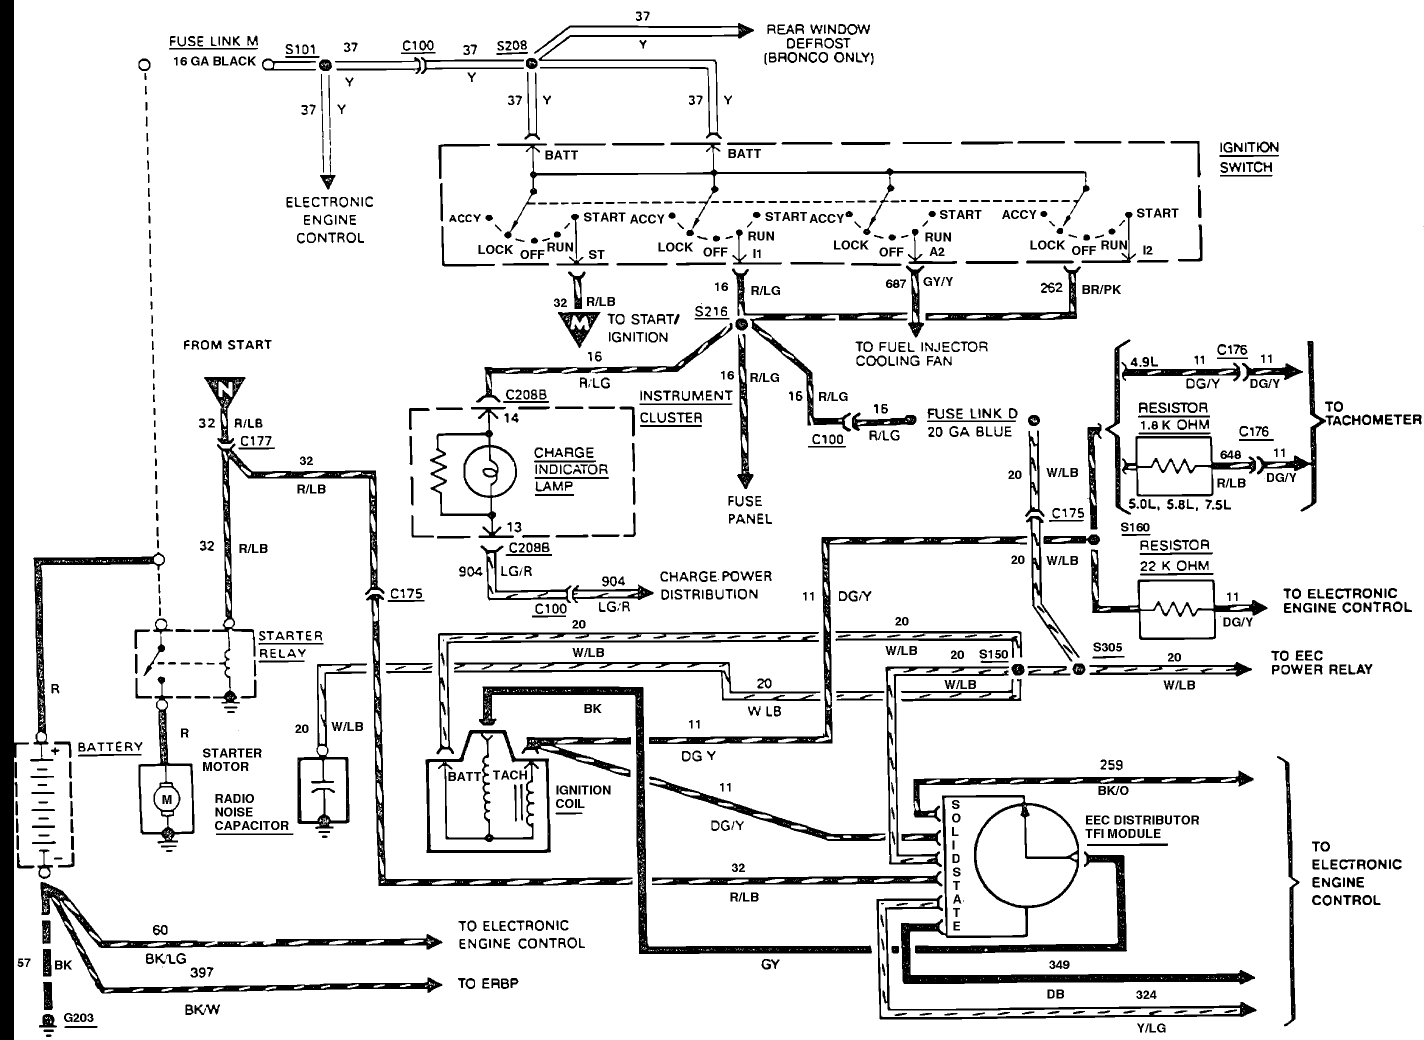 hight resolution of 1990 ford f 250 ignition wiring diagram wiring diagrams data 1990 ford f250 ignition switch wiring diagram 1990 ford f 250 ignition wiring diagram